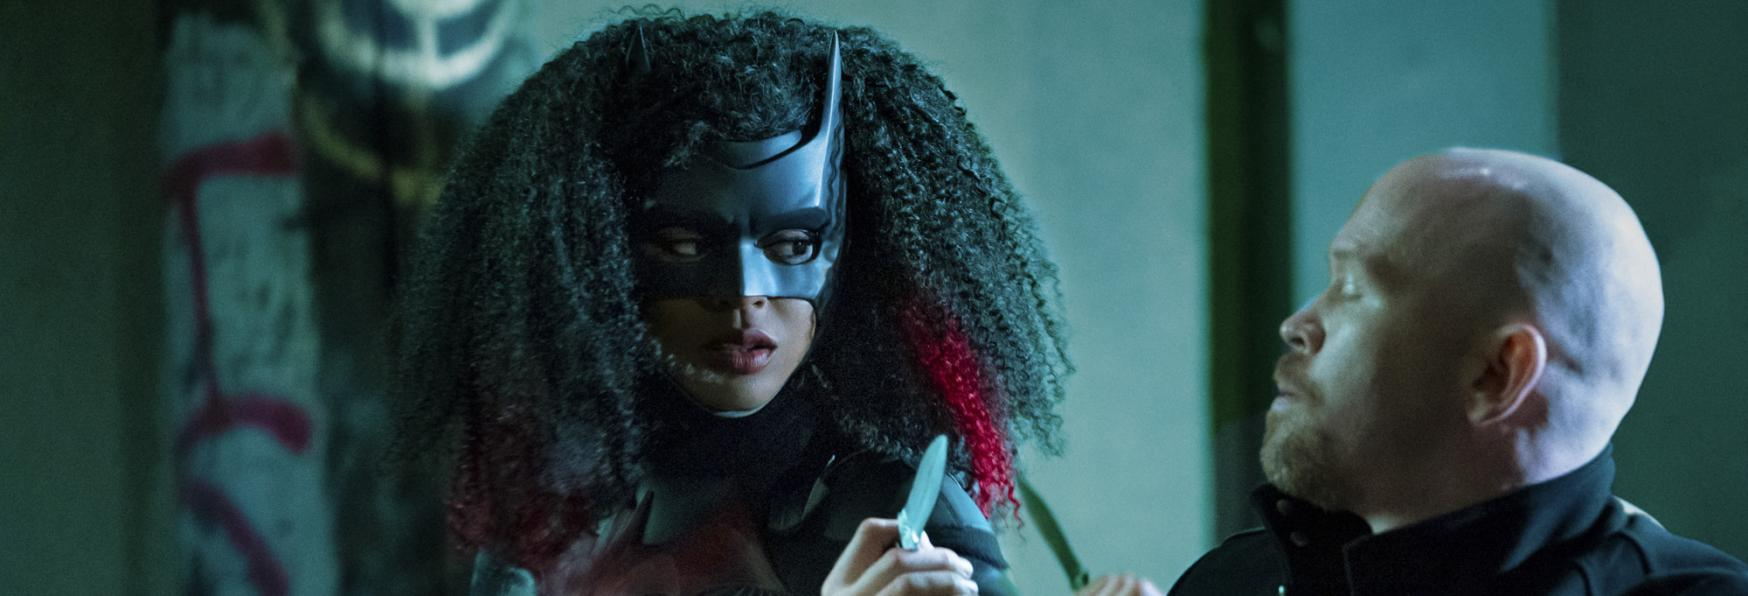 Batwoman 2x13: Svelata la Sinossi dell'Episodio I'll Give You A Clue